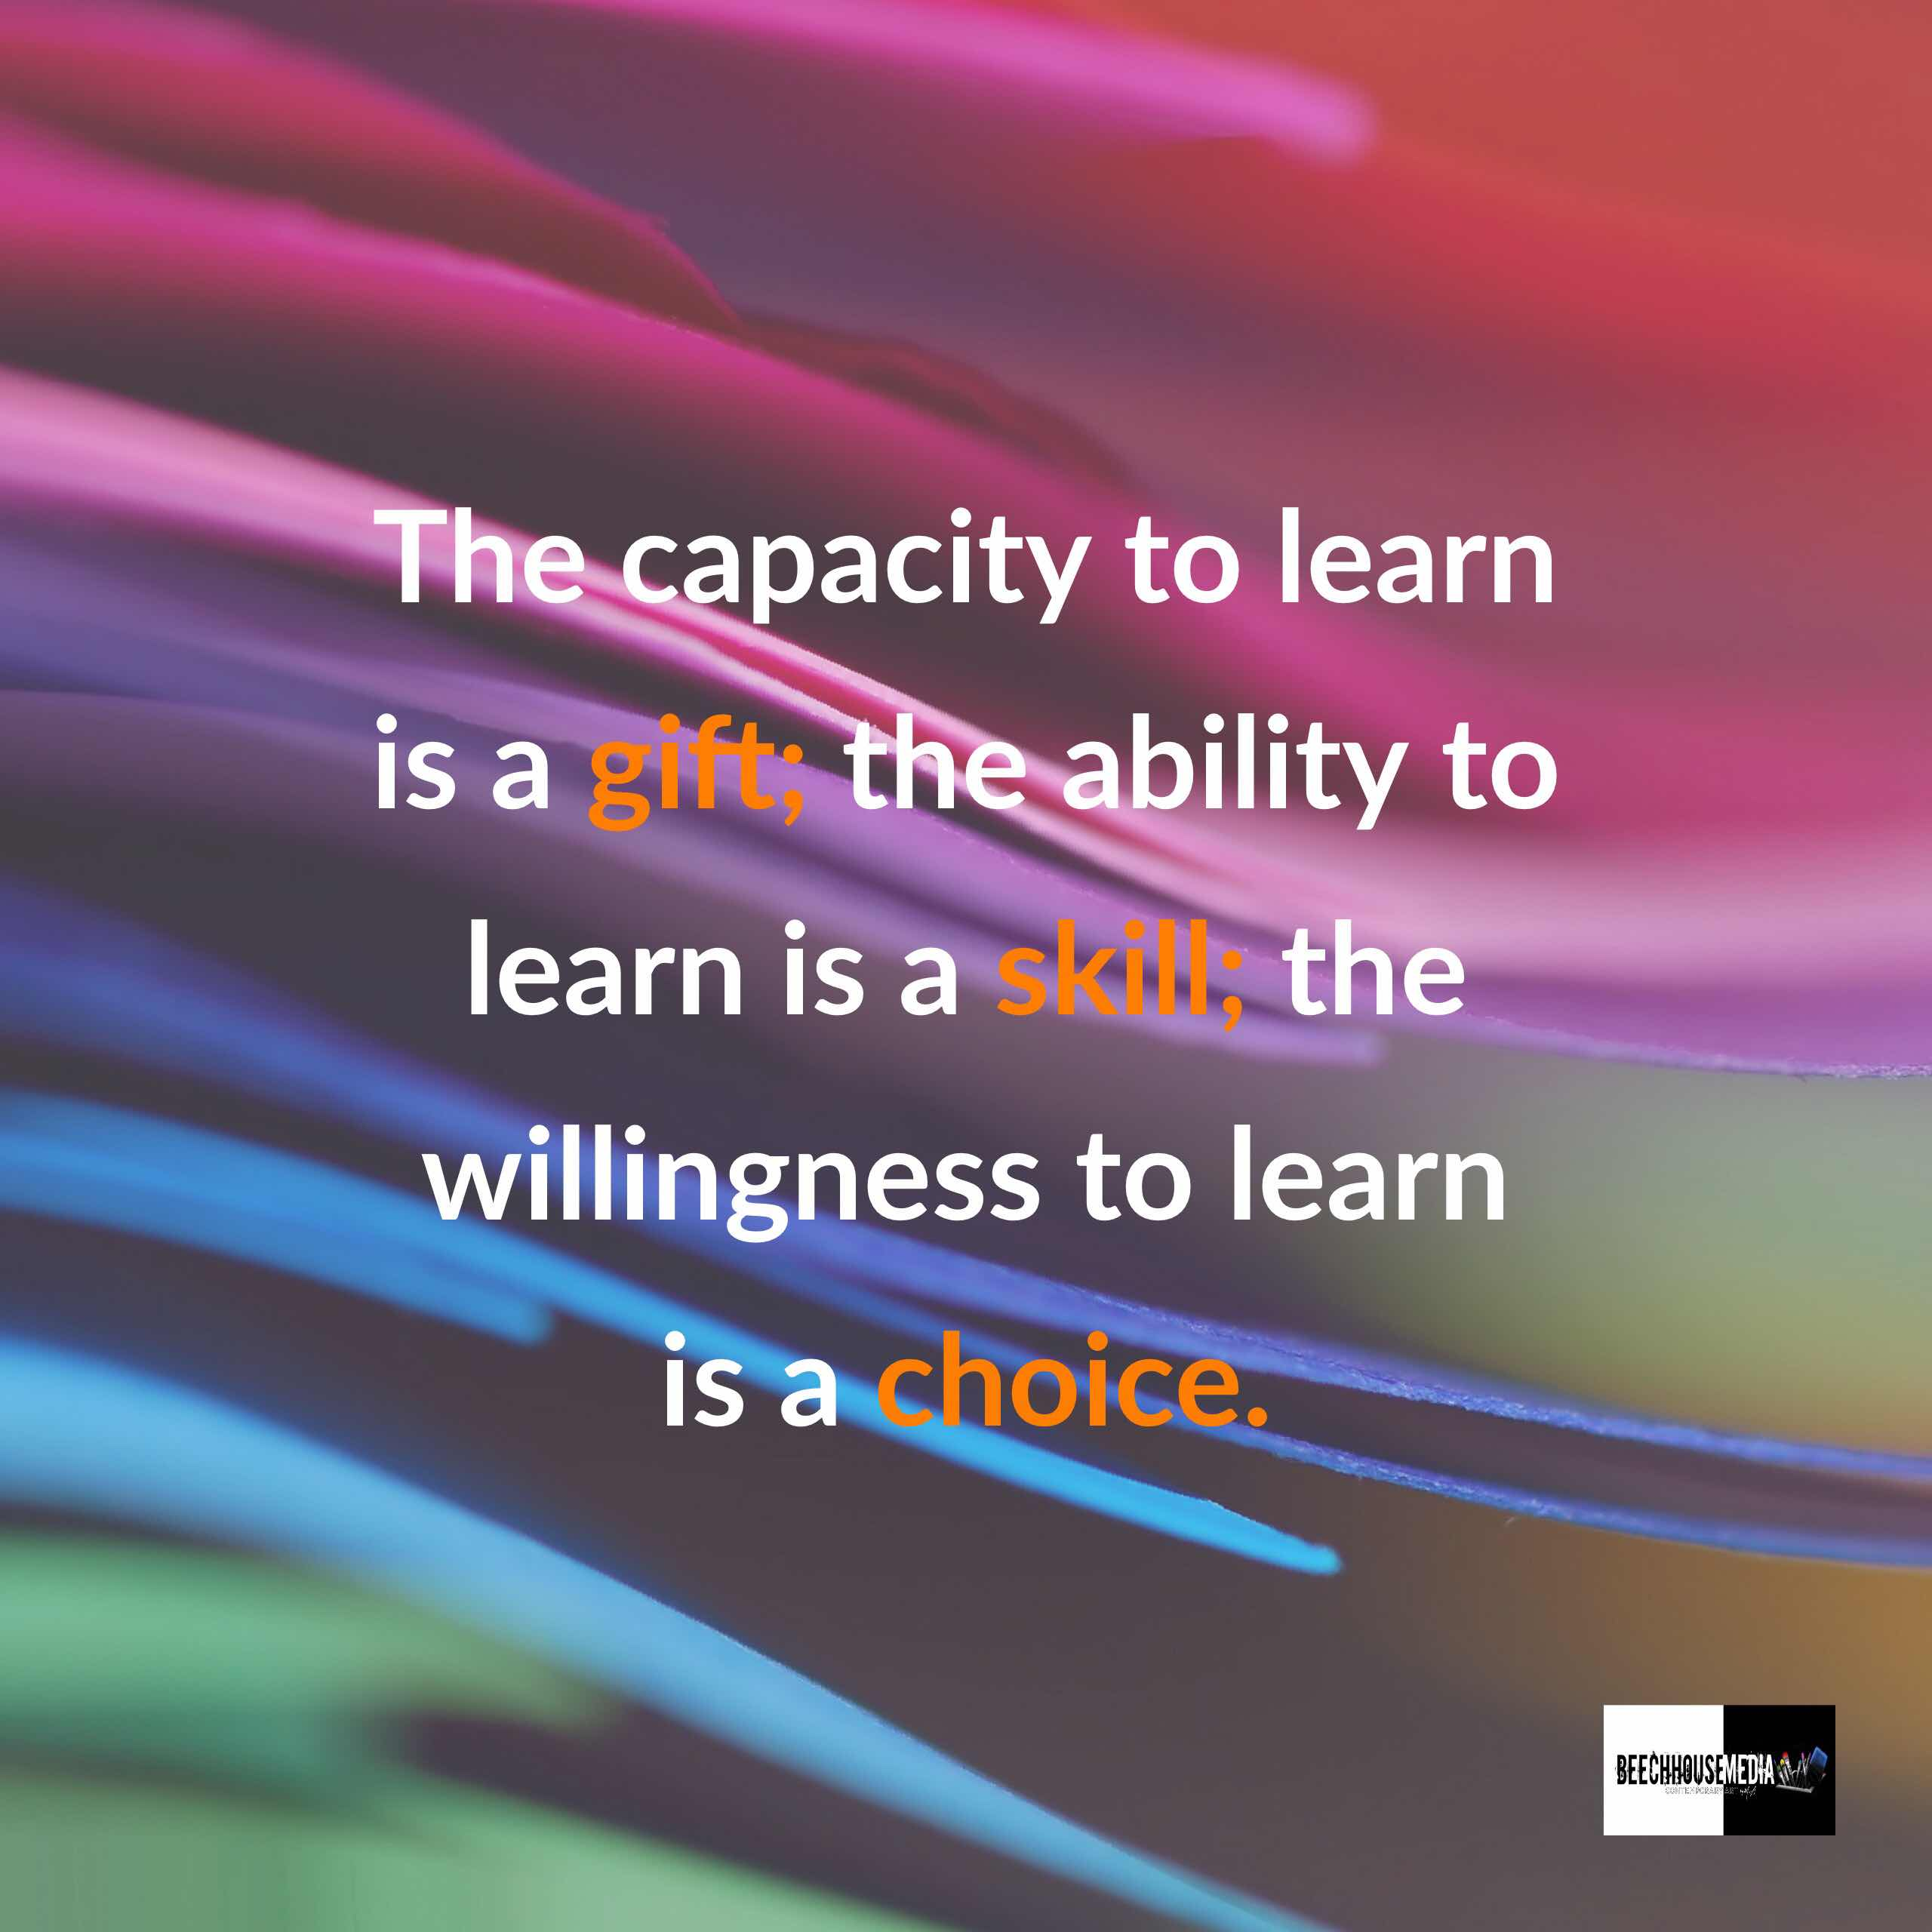 capacity to learn is a gift and a choice